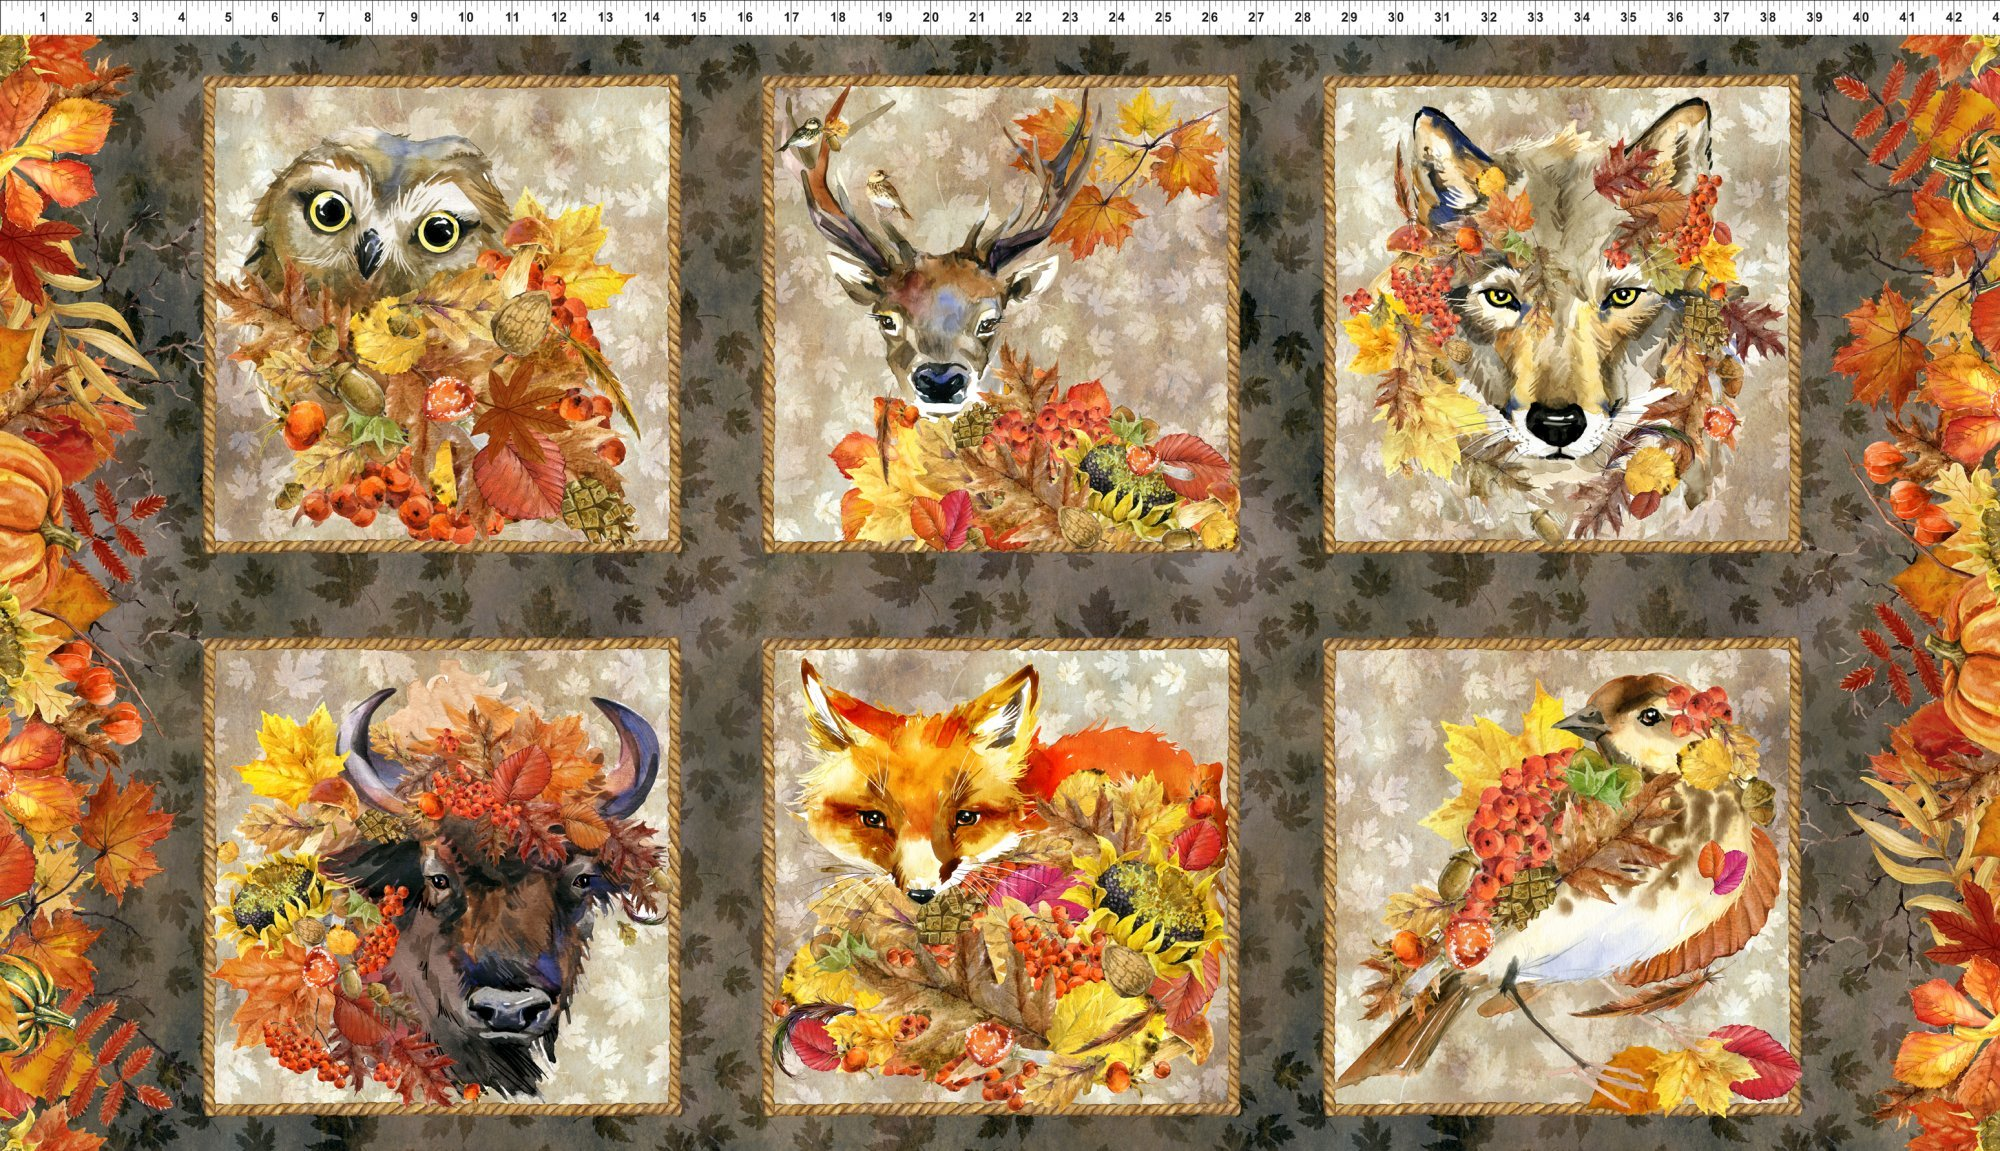 Our Autumn Friends - Panel